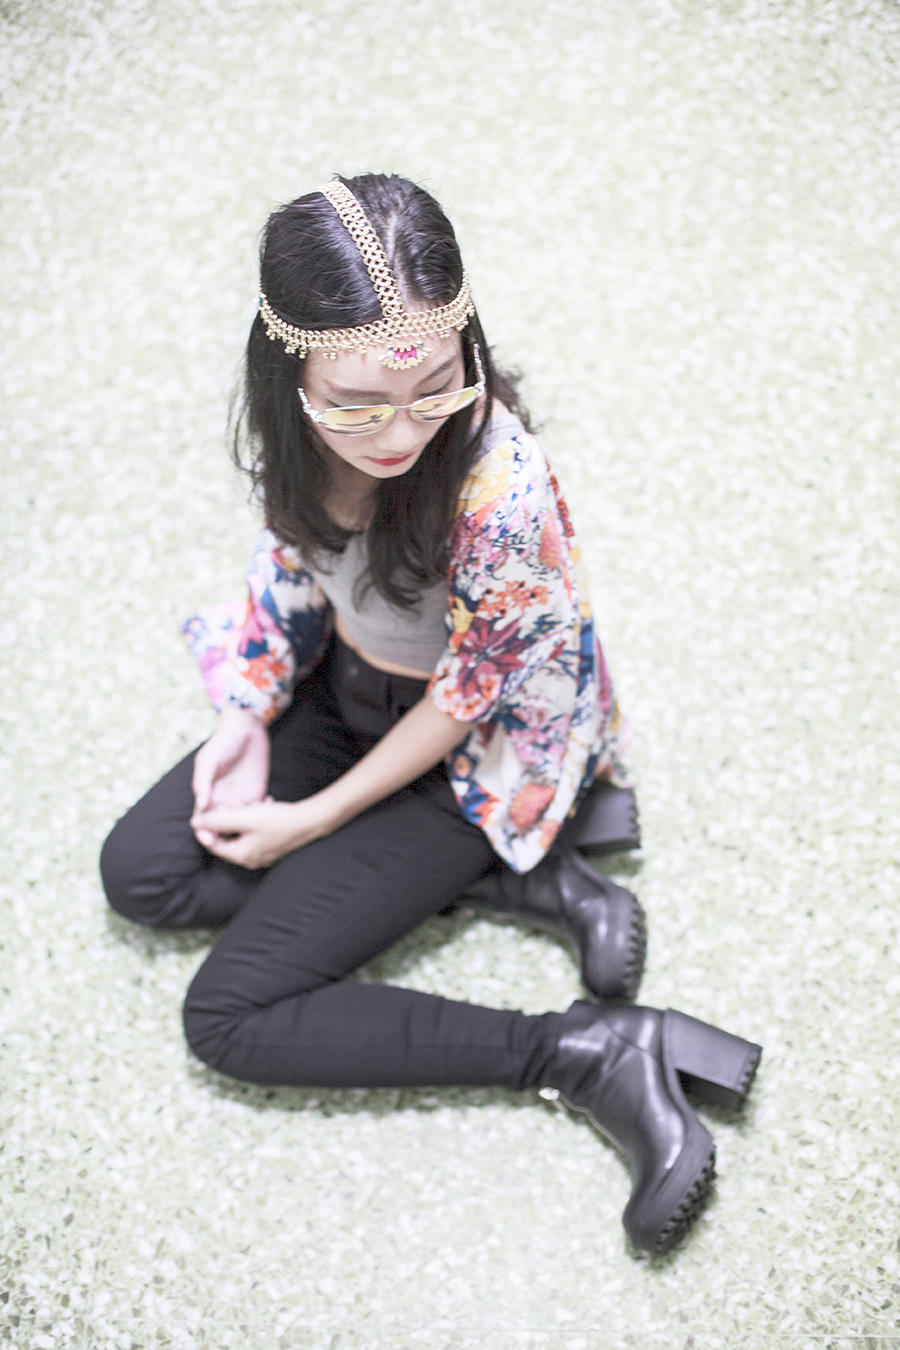 Bohemian Luxe Outfit: DressLink grey tank crop top, DressLink floral batwing cardigan kimono, Uniqlo Ultra Stretch black denim skinny jeans, Zalora Rubi black platform boots, Irresistible Me gold Jade Hair Chain, Guess iridescent sunglasses.